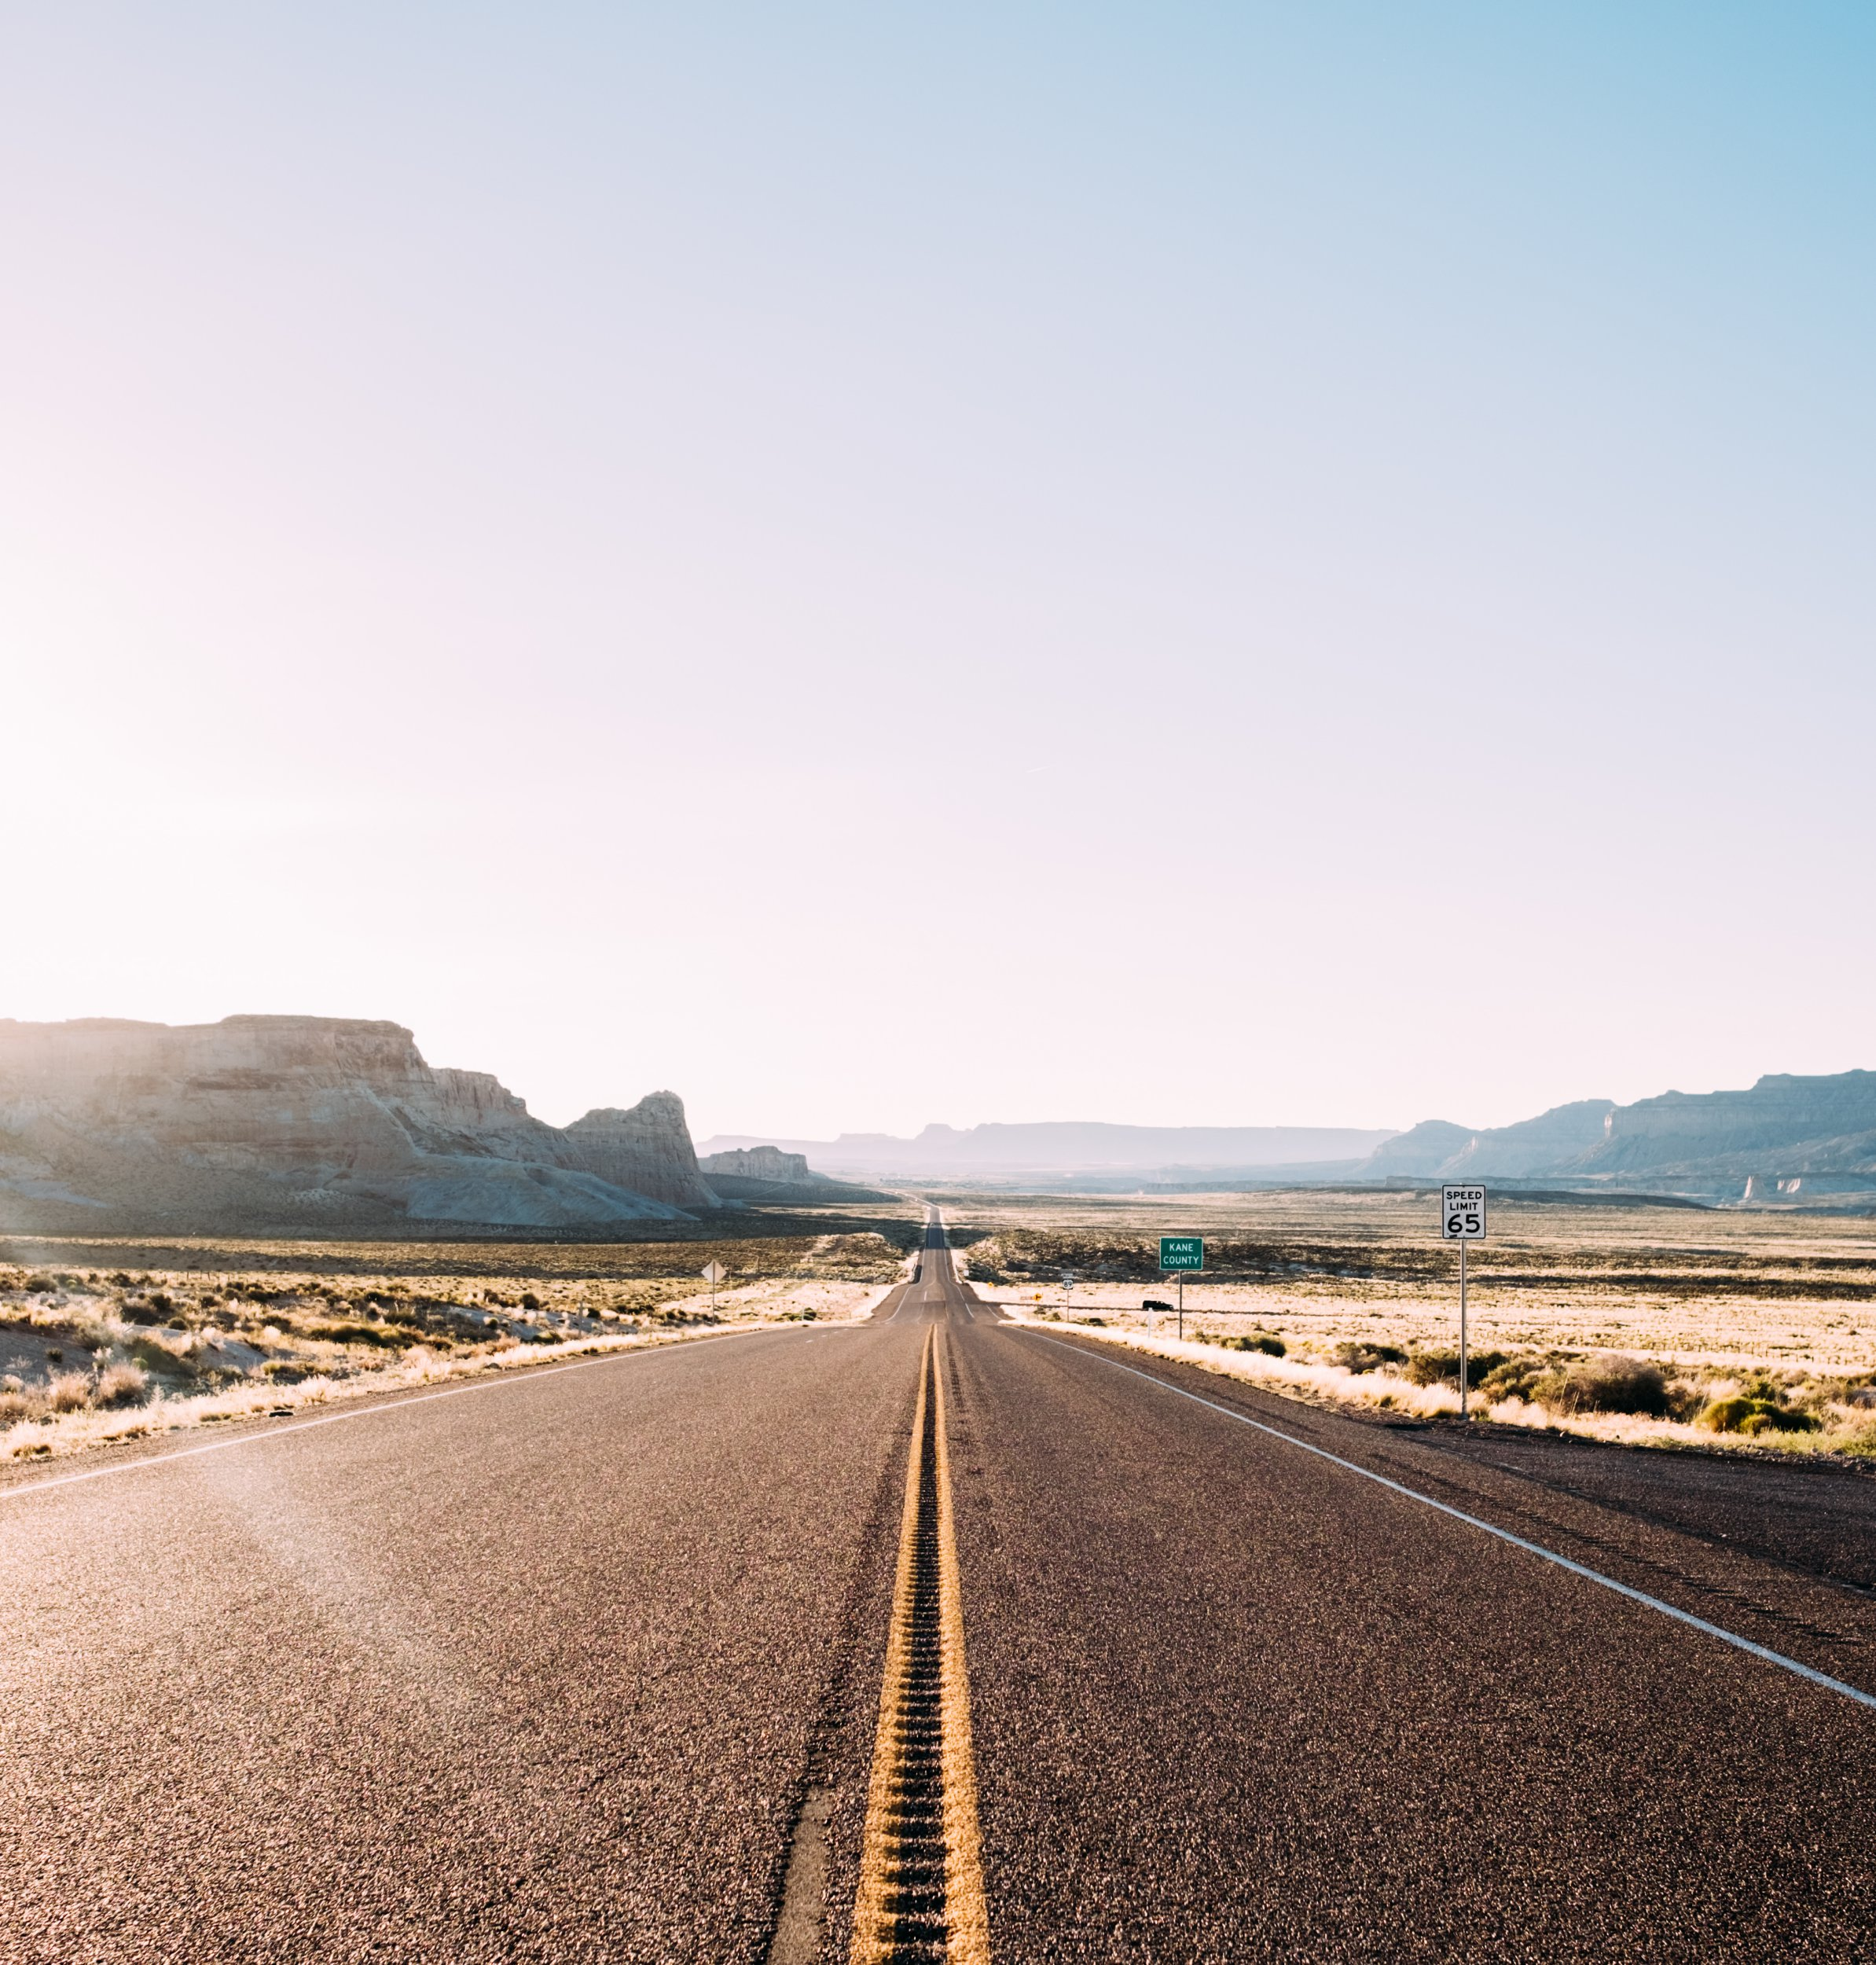 BRITS NAME ROUTE 66 WORLD???S MOST INSTAGRAM-WORTHY ROAD TRIP IN HERTZ SURVEY Hertz adds three new routes to USA Road Trip Planner: Canyons of Arizona and Nevada, California Surfing and Totally Texas London, UK ??? January 7, 2019 - Route 66 has been named as the most Instagram-worthy road trip in the world, according to Brits. The study, commissioned by Hertz in the UK, polled 2,000 adults to identify the latest trends in road trip holidays and found the top three routes were made up of US-based trips. These include the Grand Canyon and the Pacific Coast Highway, with 56 percent of respondents naming the U.S. as the road trip capital of the world. The research also identified key ingredients for a successful road trip, which include wide-open roads, driving past famous attractions and spotting wildlife along the way. Discovering views and taking in the scenery is the main purpose for adults over 38 years old (over 38s) going on a road trip, while millennials want to enjoy a new experience. Following the research, Hertz has launched three new routes to its USA Road Trip Planner: Canyons of Arizona and Nevada, California Surfing and Totally Texas, providing inspiration for routes to experience iconic and off-the-beaten track scenic drives and pit-stops. A free online resource, the Hertz Road Trip Planner also features the legendary Route 66, along with 30 other bespoke routes across the USA. Temerity Vinson, Senior Director International Marketing, Hertz said: ???The survey results clearly show how much adventurers love the USA for a road trip. The influence of social media has had a huge impact on destinations of choice, bringing increased awareness of less well-known areas, as well as ensuring that gems such as the Route 66 are still as popular as ever. ???Hertz is always dedicated to finding new ways to help our customers plan their dream trip. Our USA Road Trip Planner can help our customers experience a different culture, discover new cuisines or vis